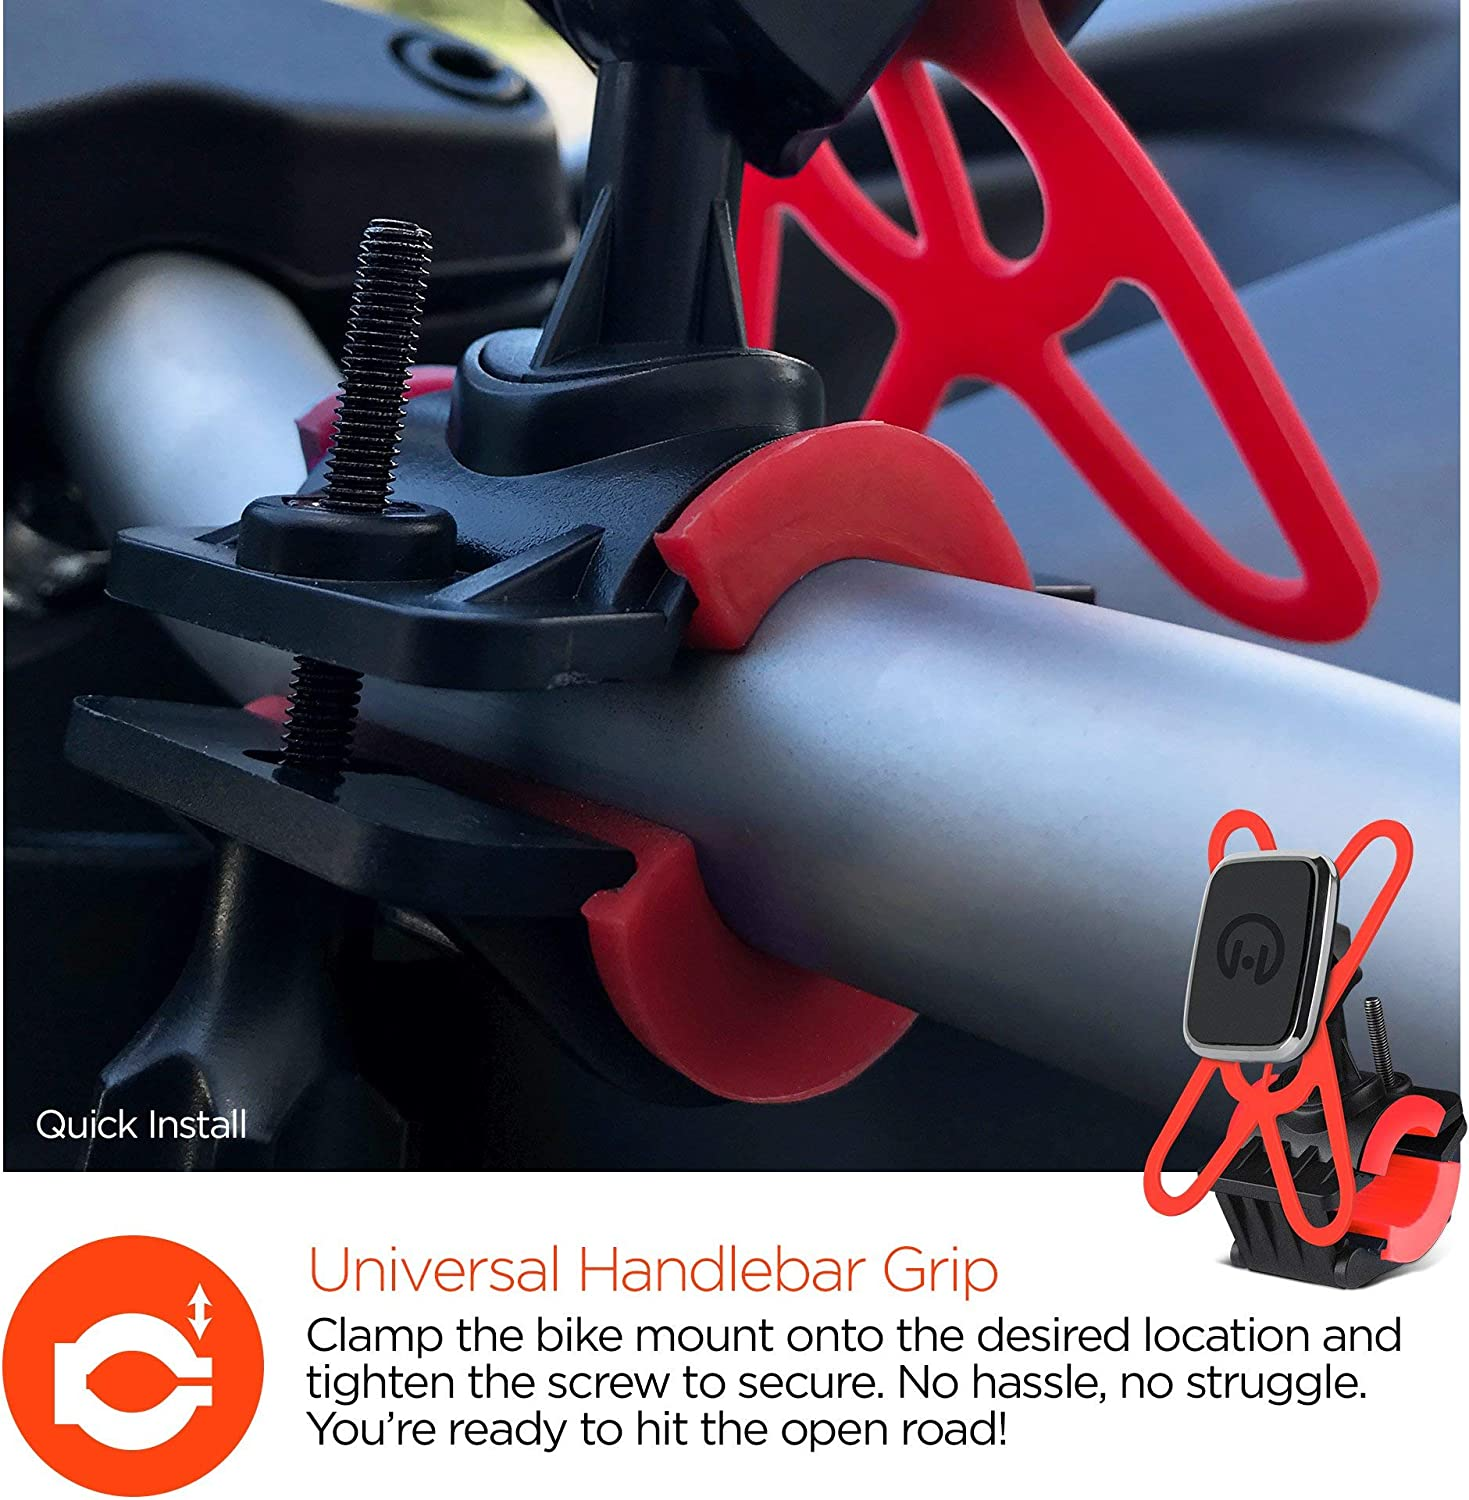 Galaxy S9 //S9+ //Note 8 // S8//S8Plus /& More Universal Magnetic Bike Mount Cell Phone Holder Renewed Compatible for iPhone X//8//8 Plus Black Mounting on Motorcycles /& Strollers